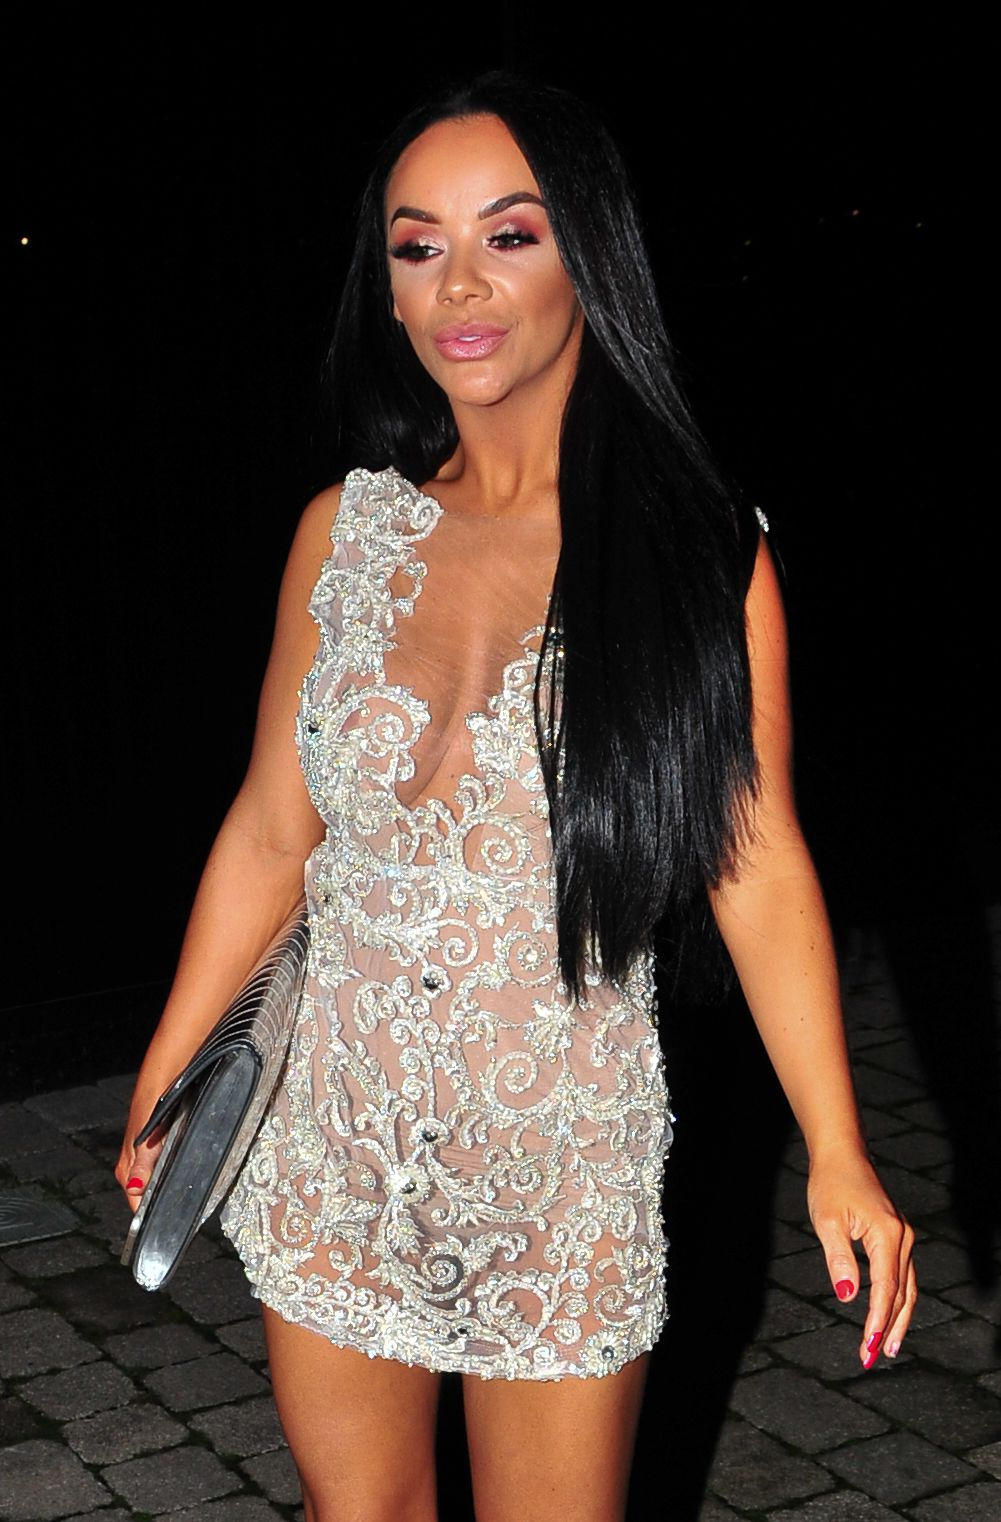 chelsee-healey-see-through-12